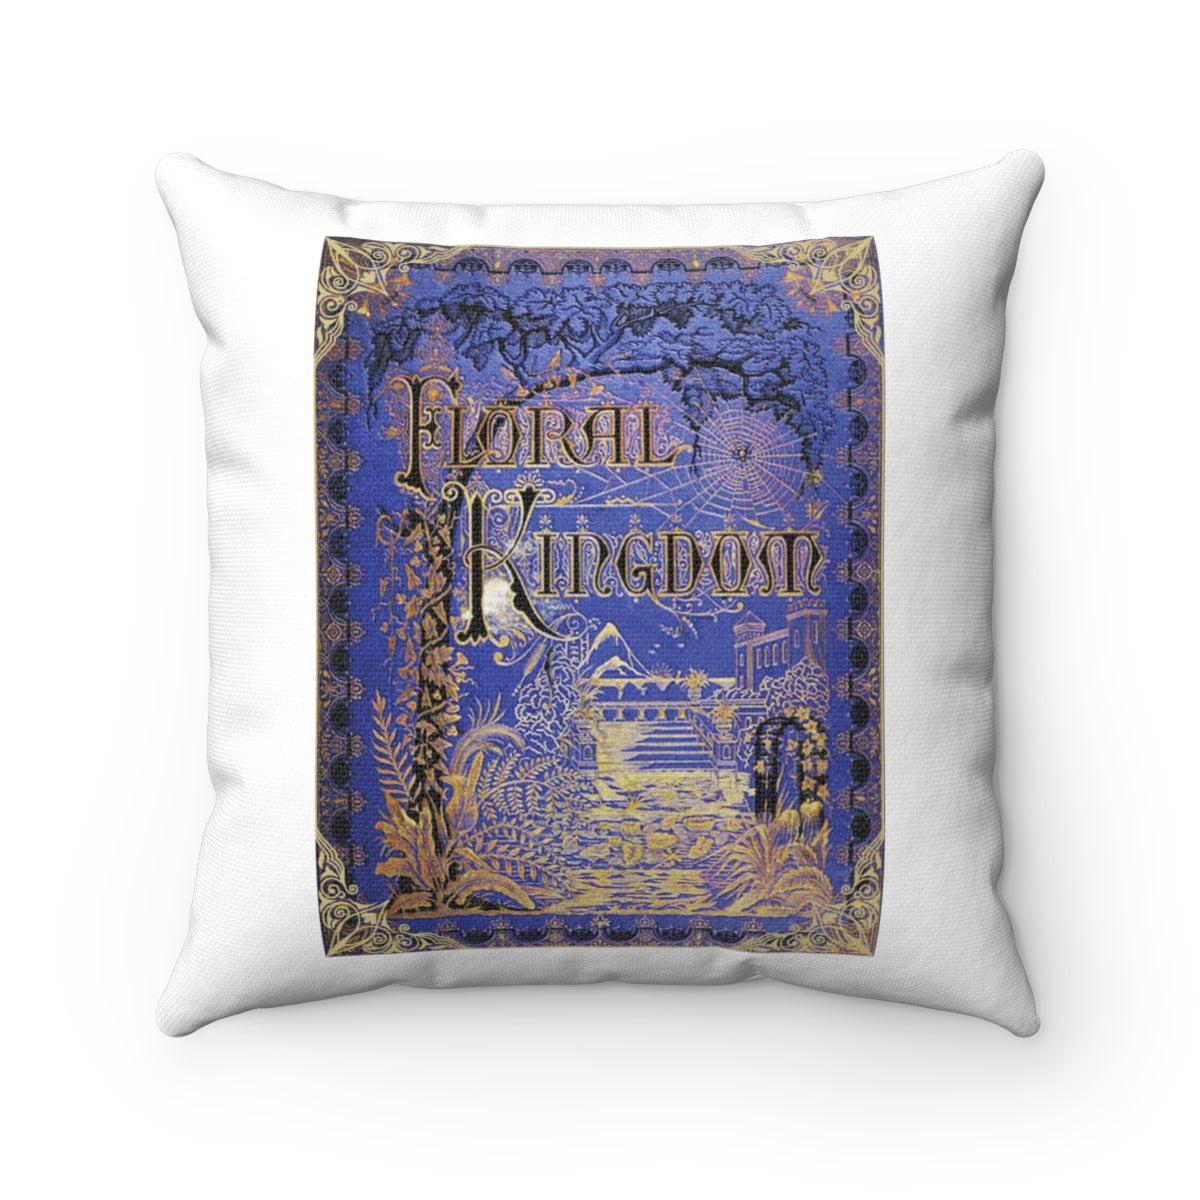 Vintage Book Cover - Floral Kingdom Pillow